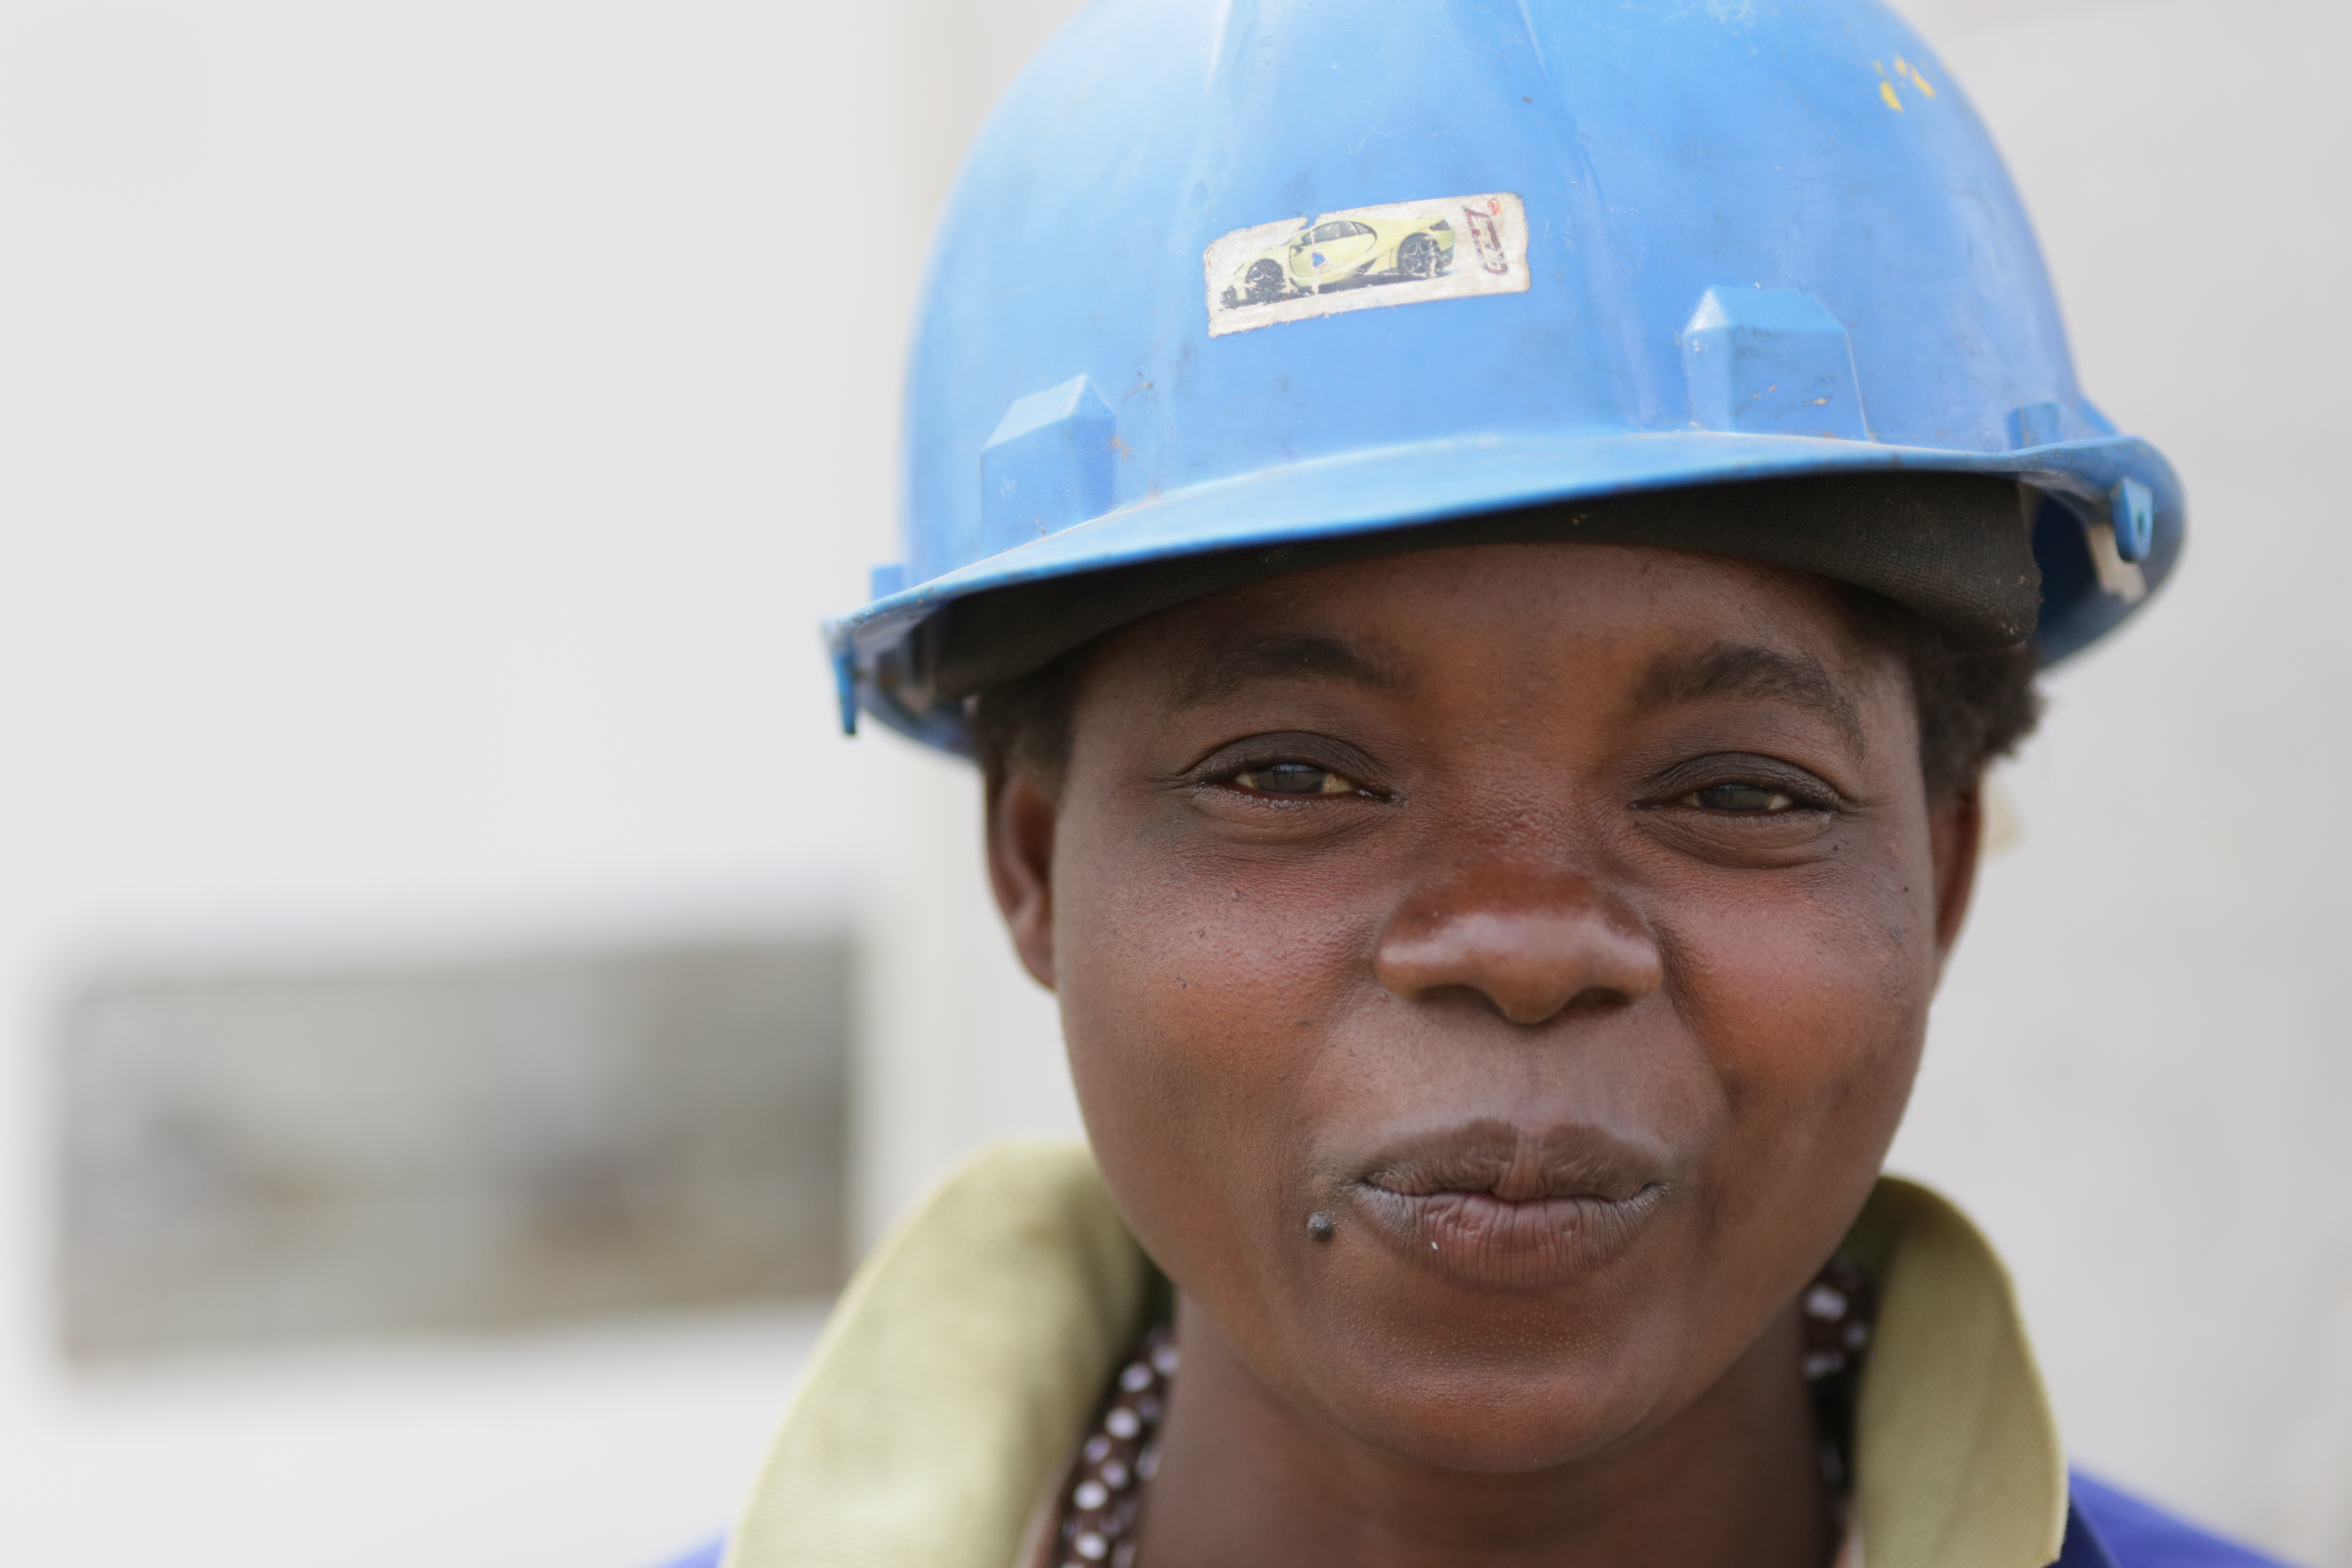 Photograph of a female utility worker